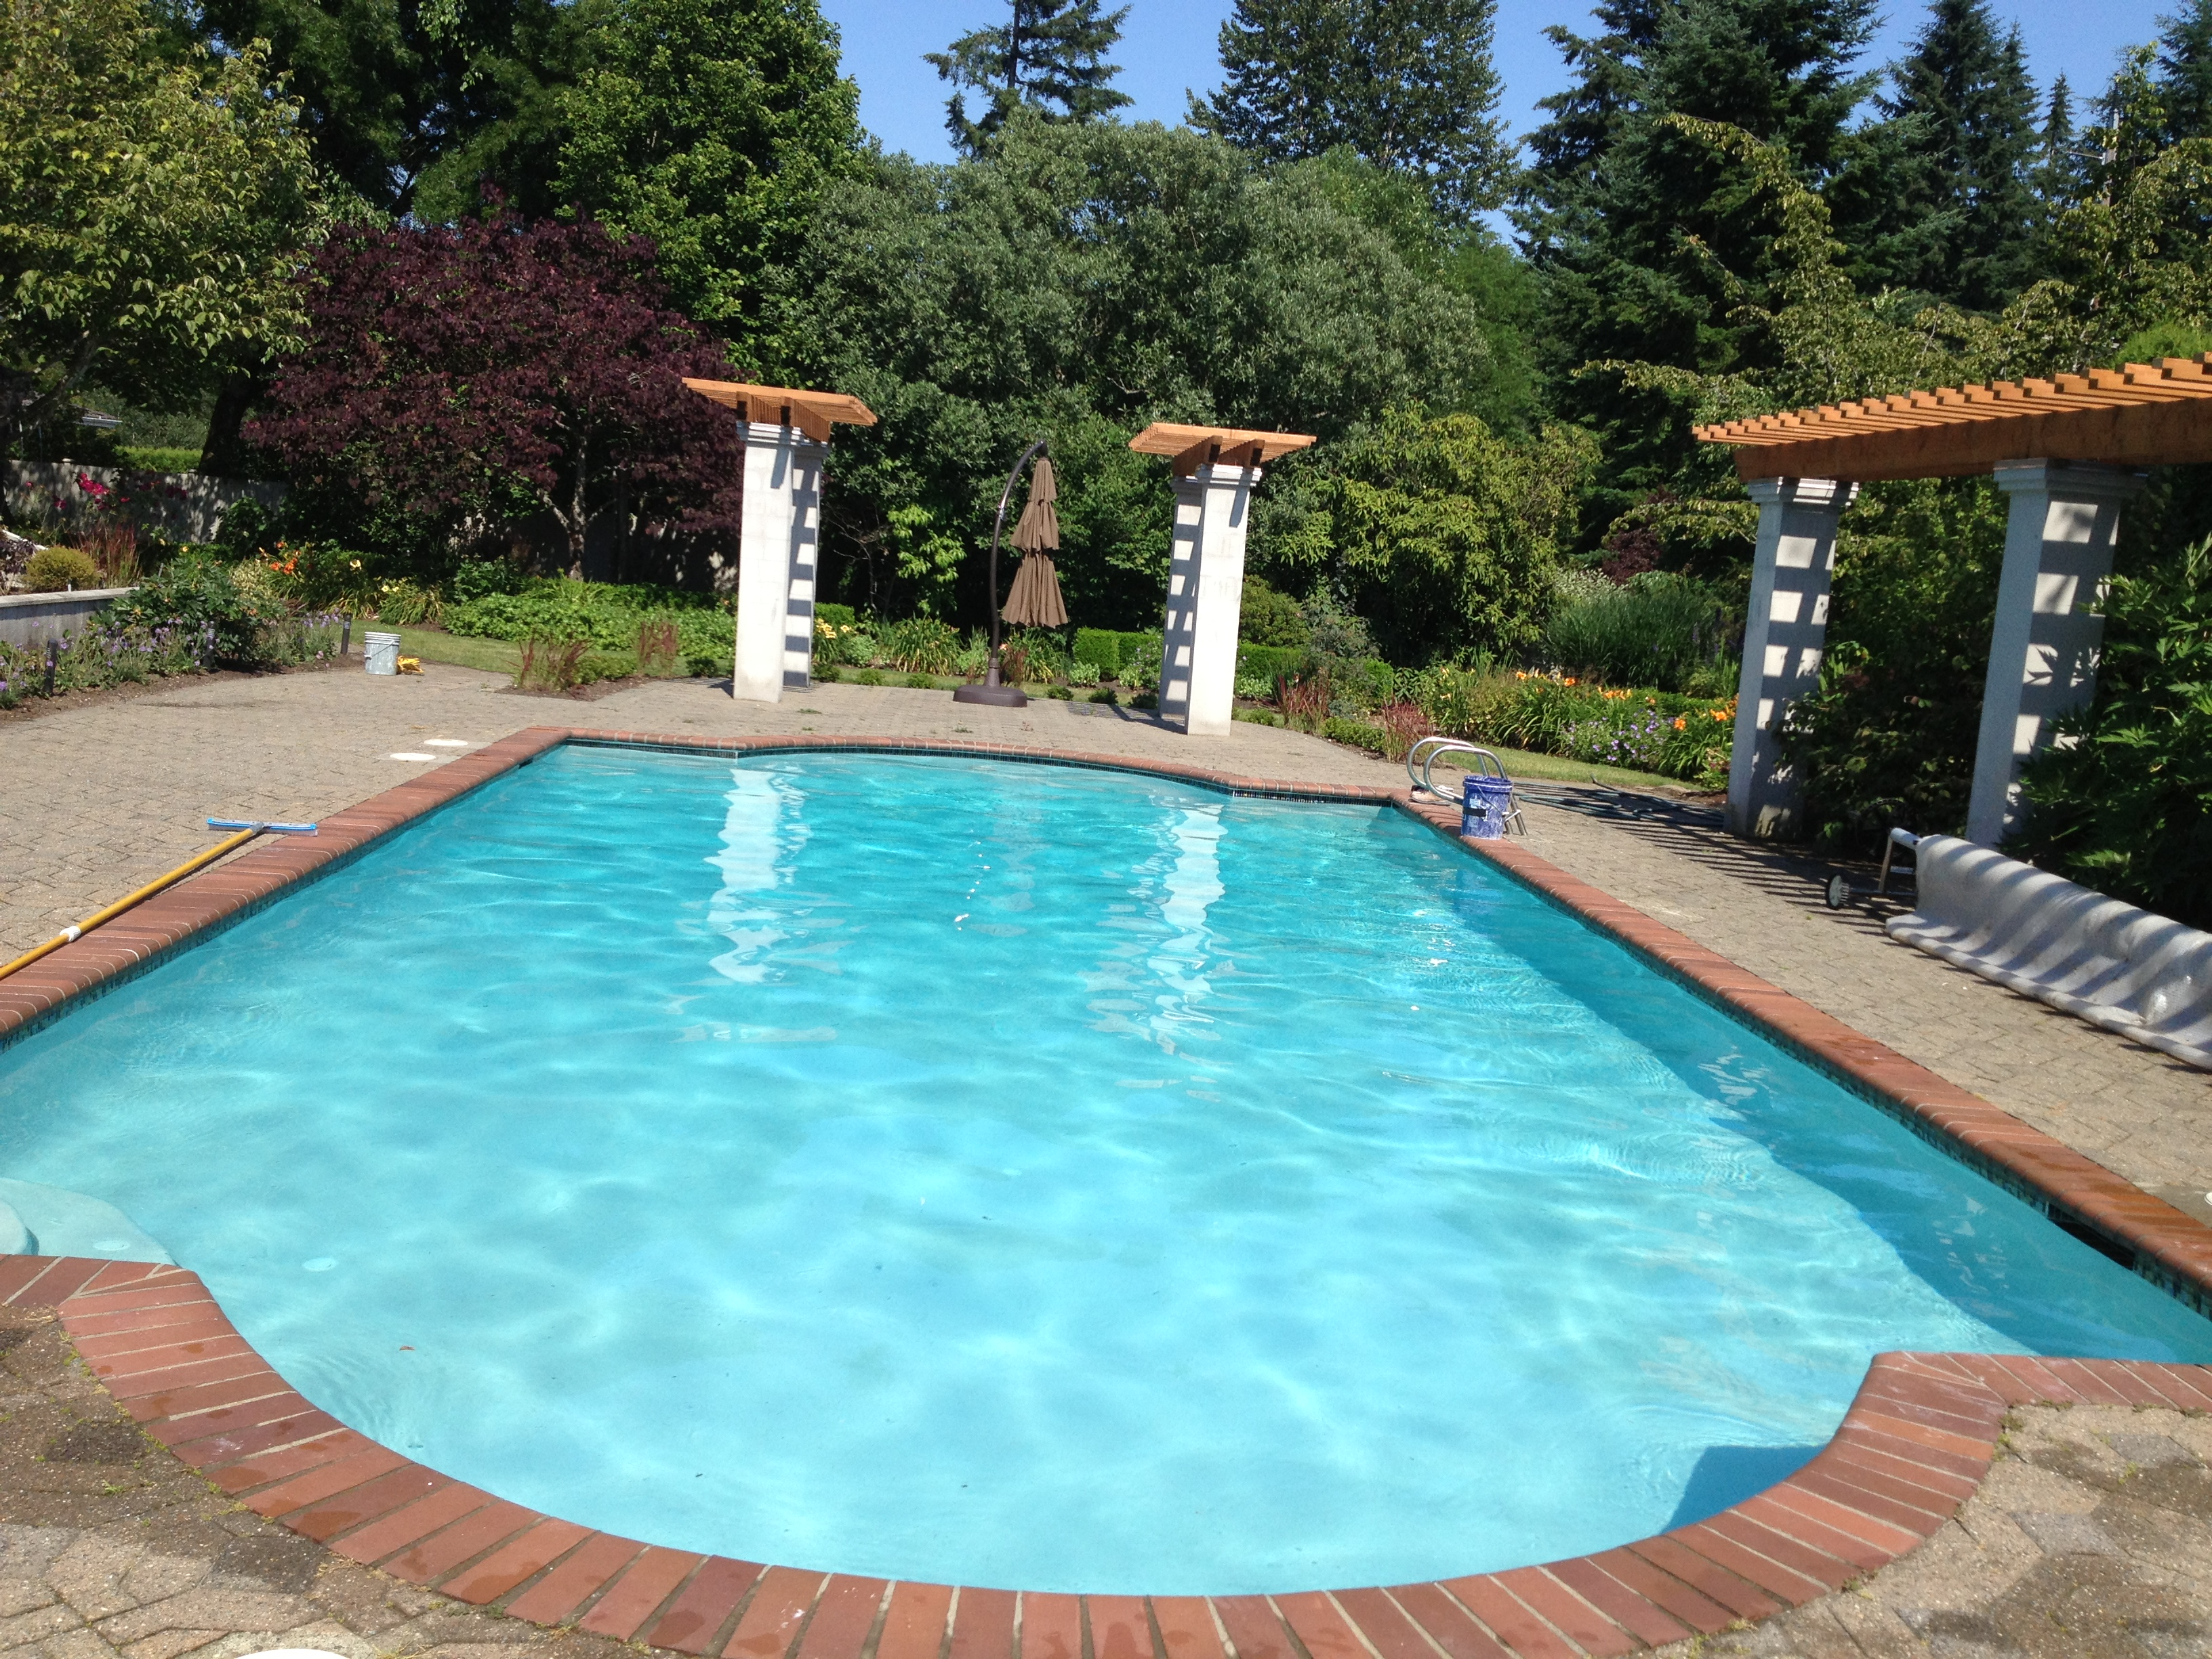 Seattle pool spa builder local swimming pool contractors for Local pool contractors